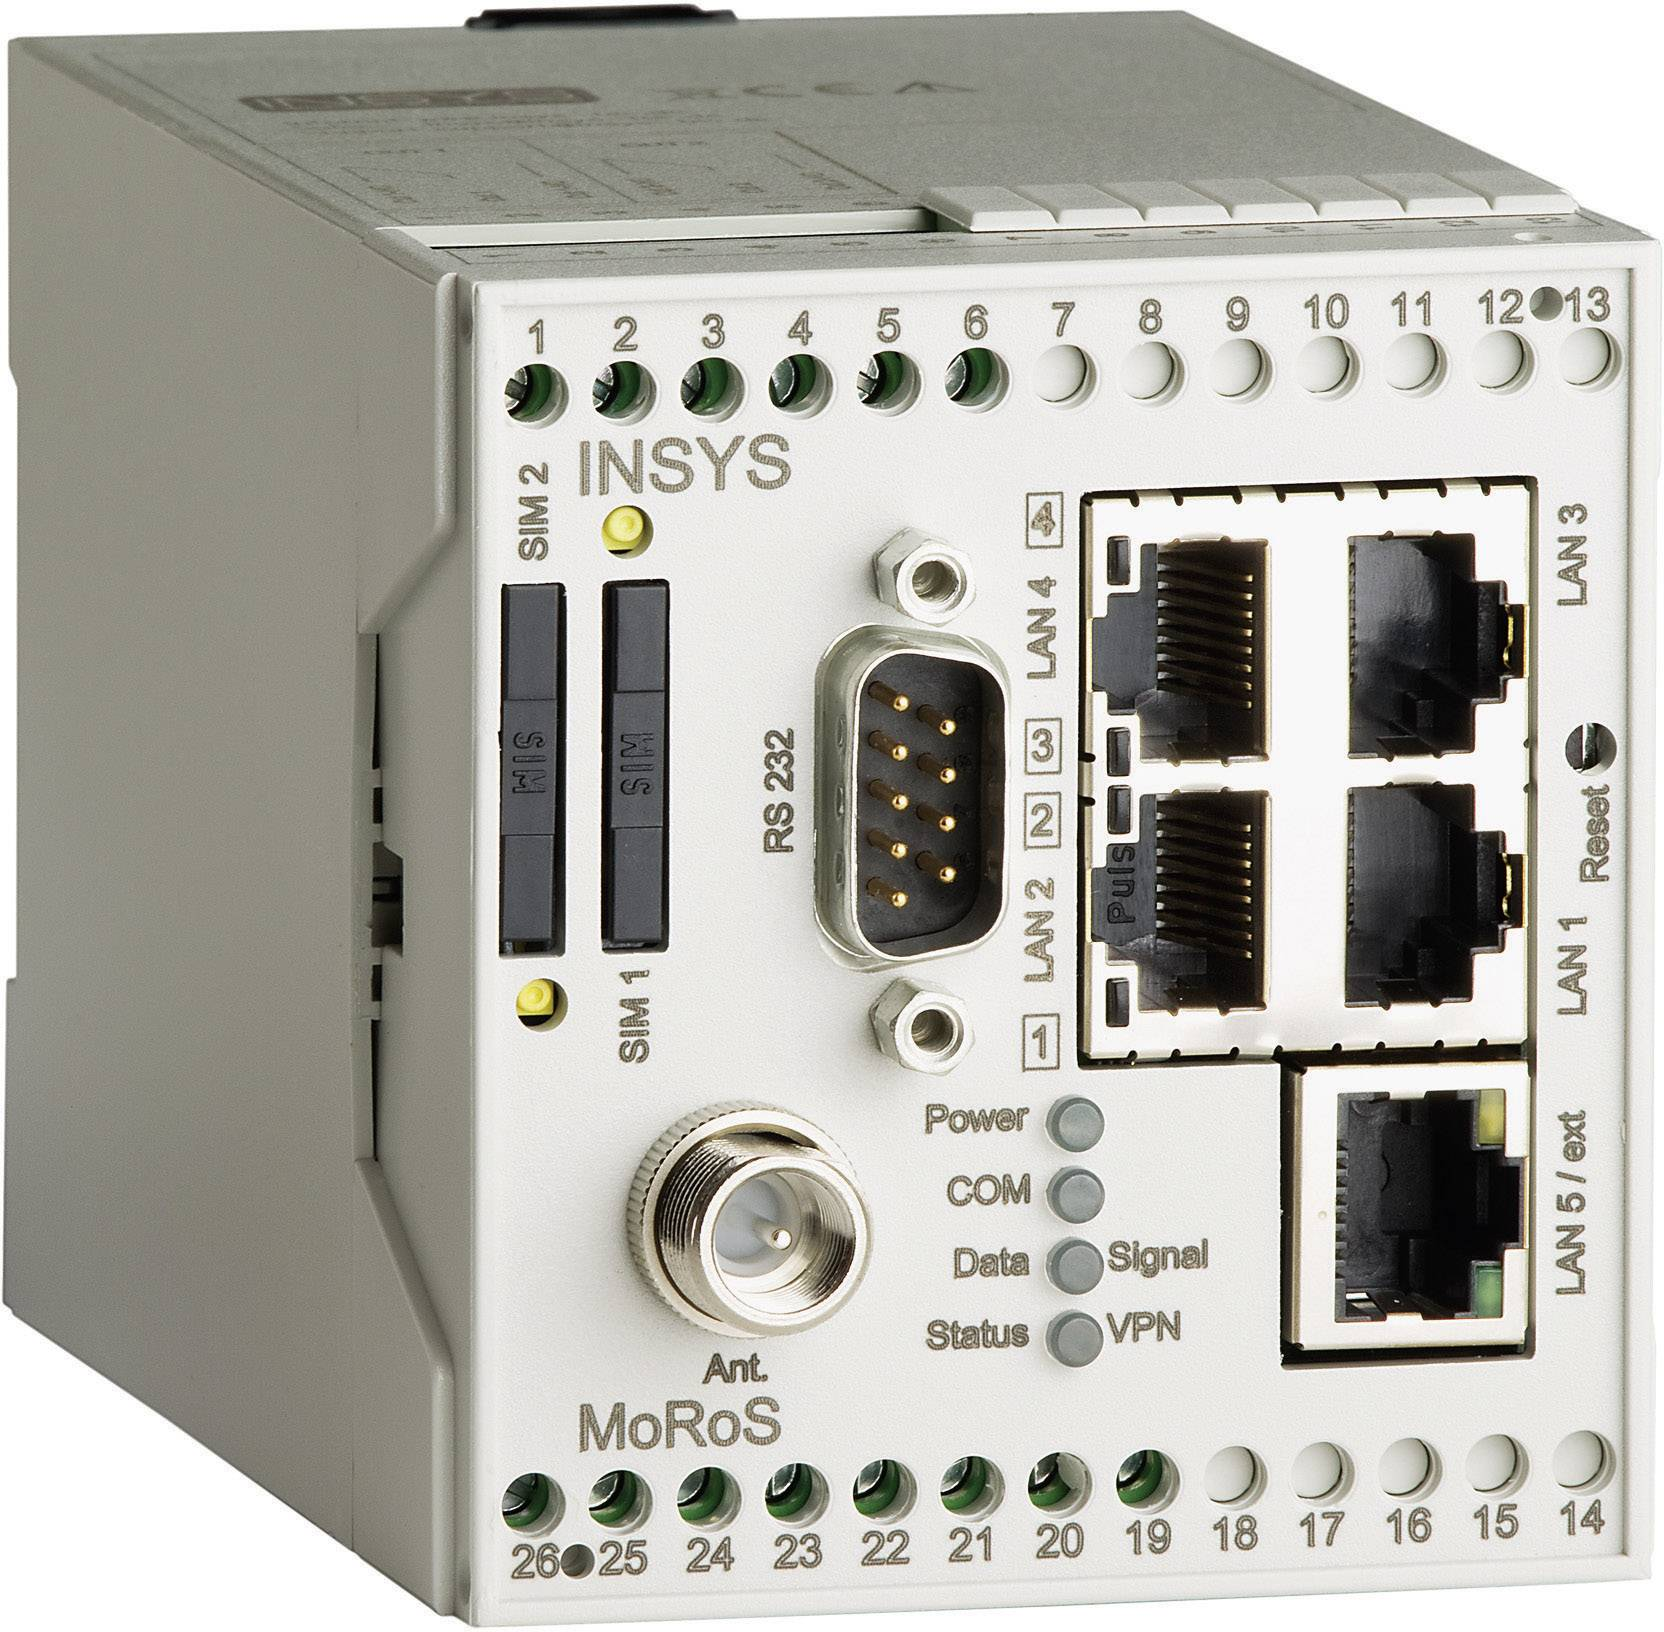 GPRS/HSPA router Insys 10000212, 110 x 70 x 75 mm